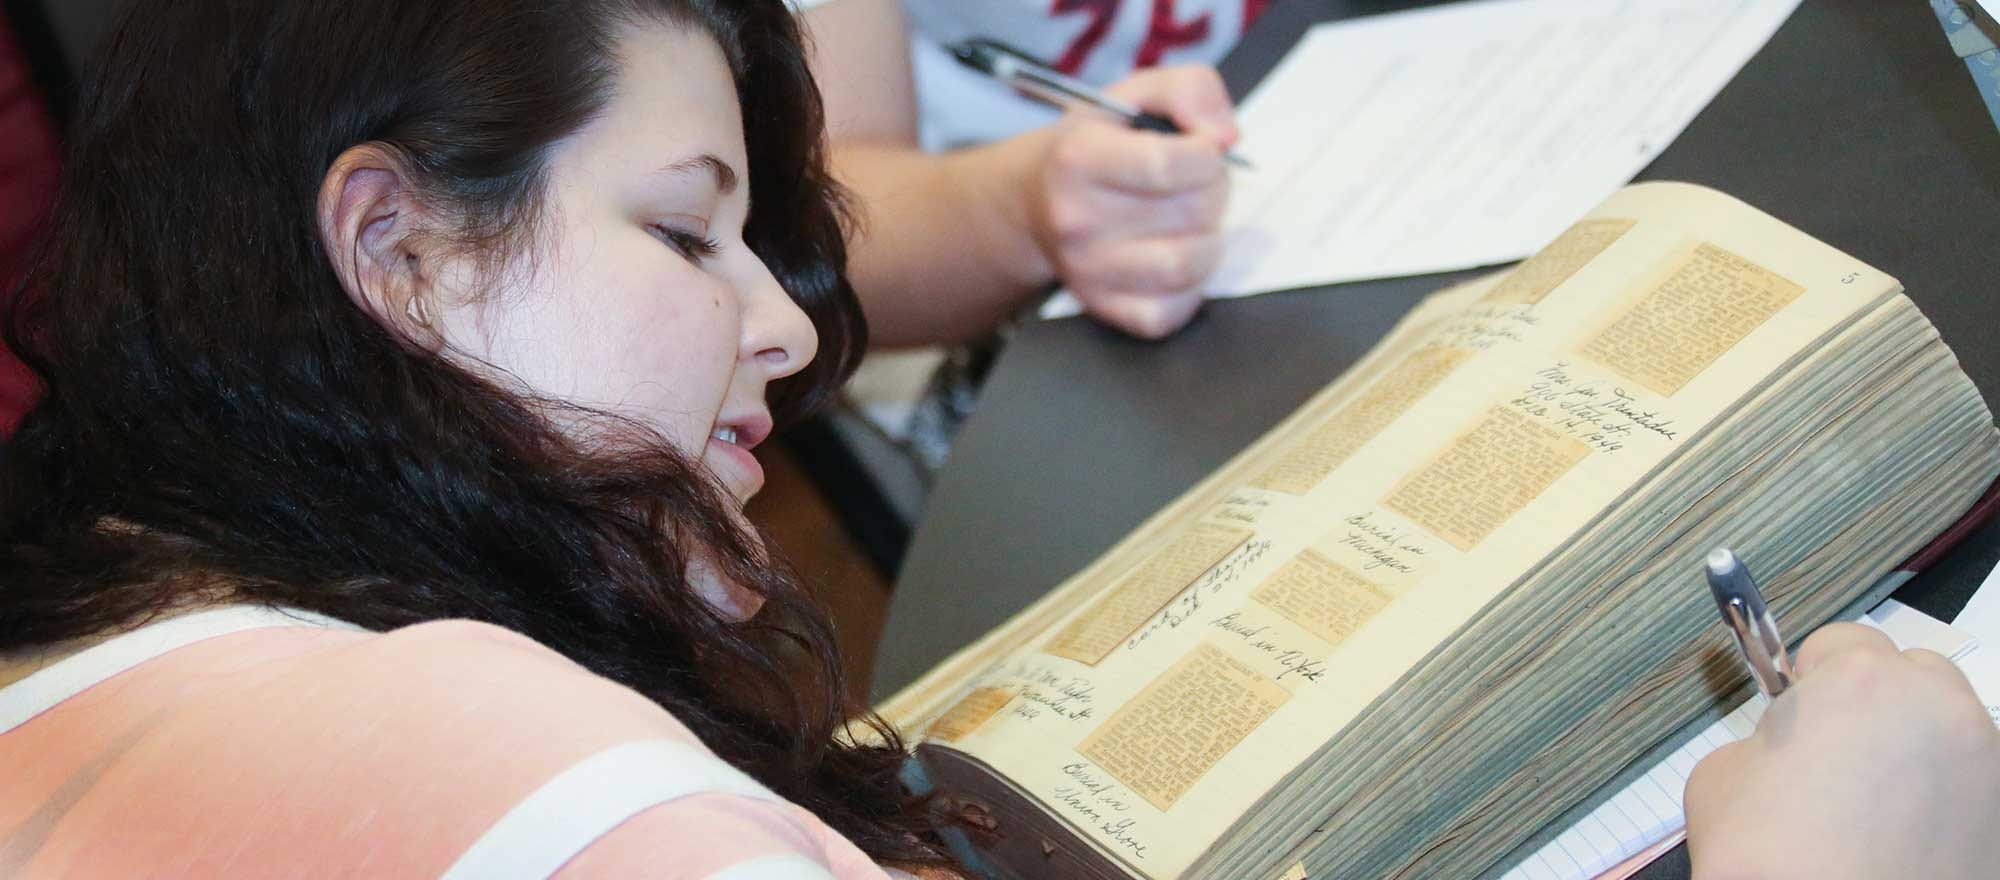 Student working with archives collection